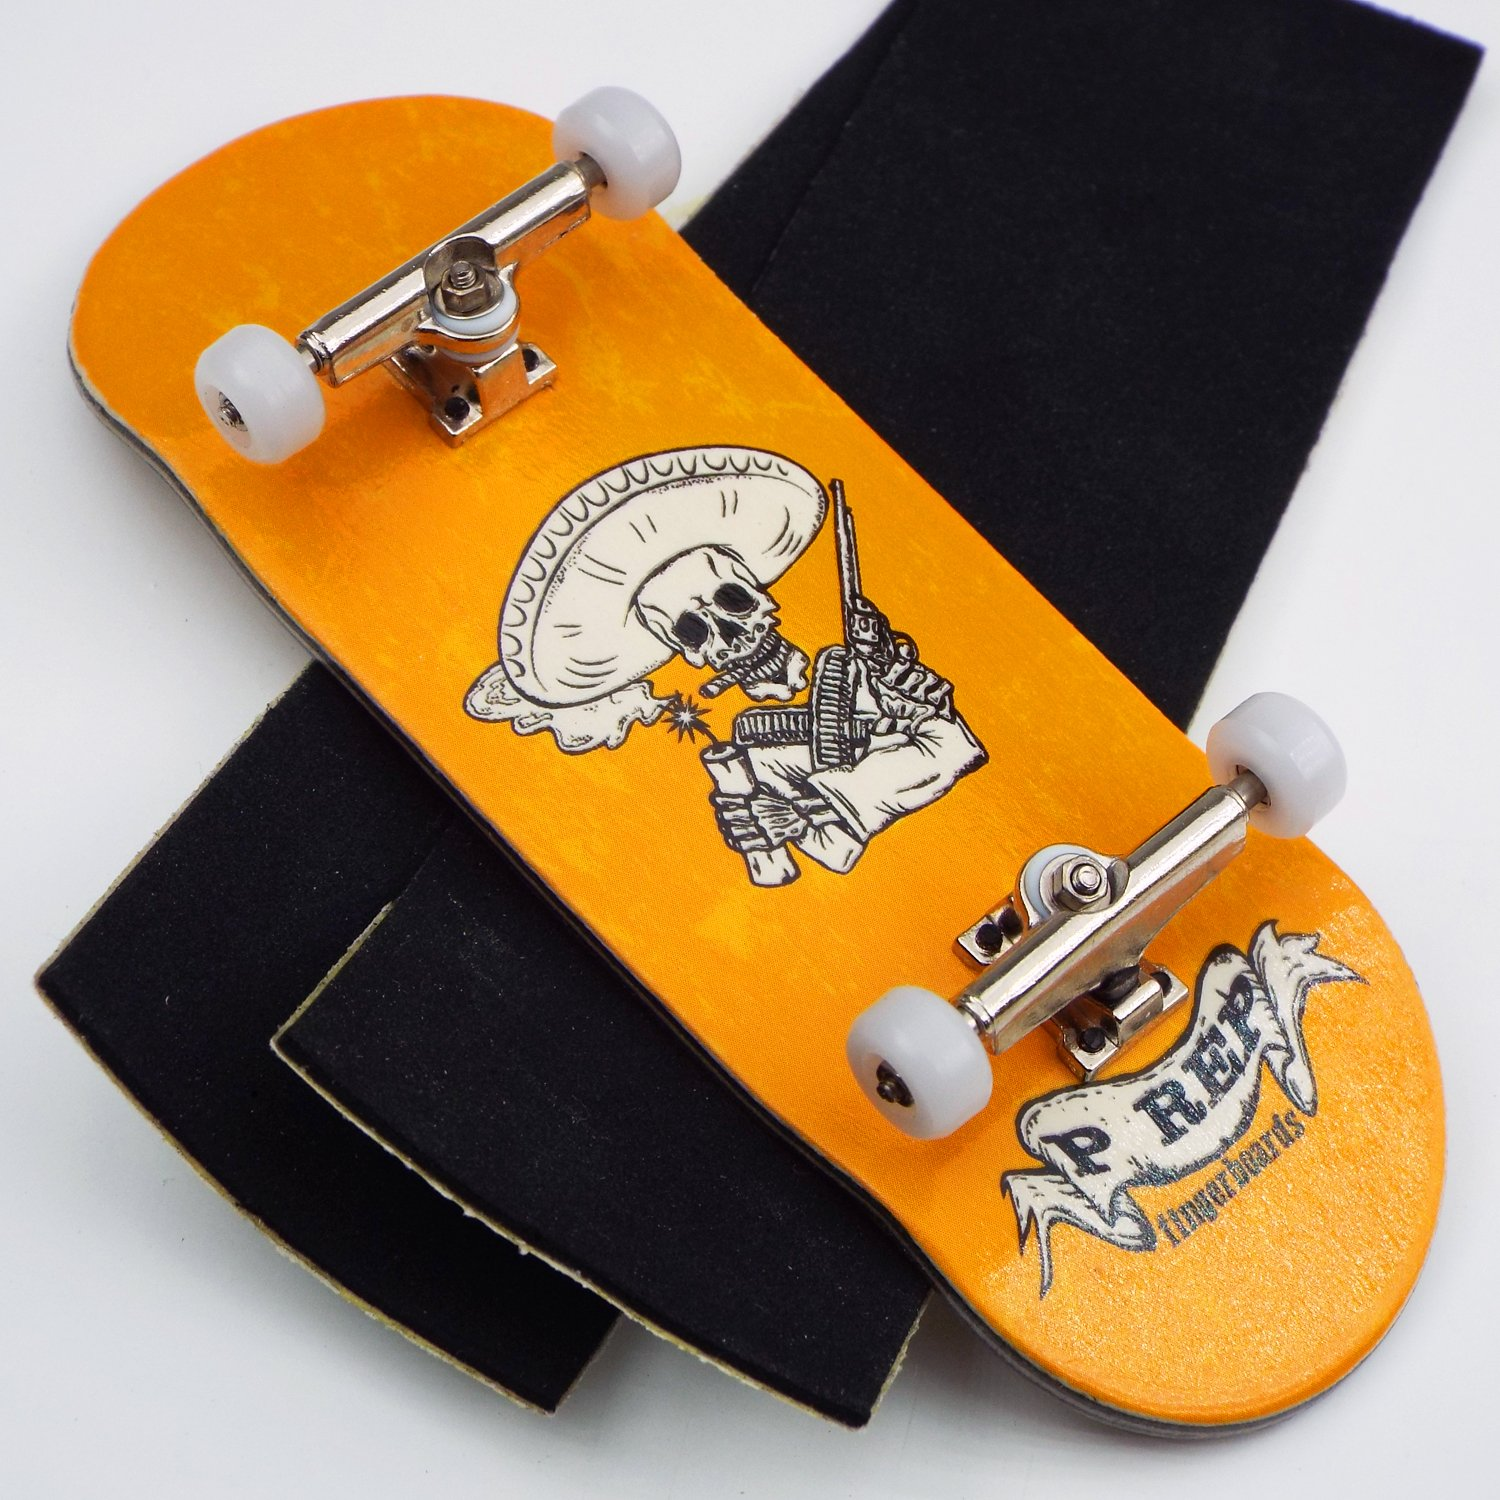 P-REP TUNED Complete Wooden Fingerboard 34mm x 100mm - Bandito by Peoples Republic (Image #1)